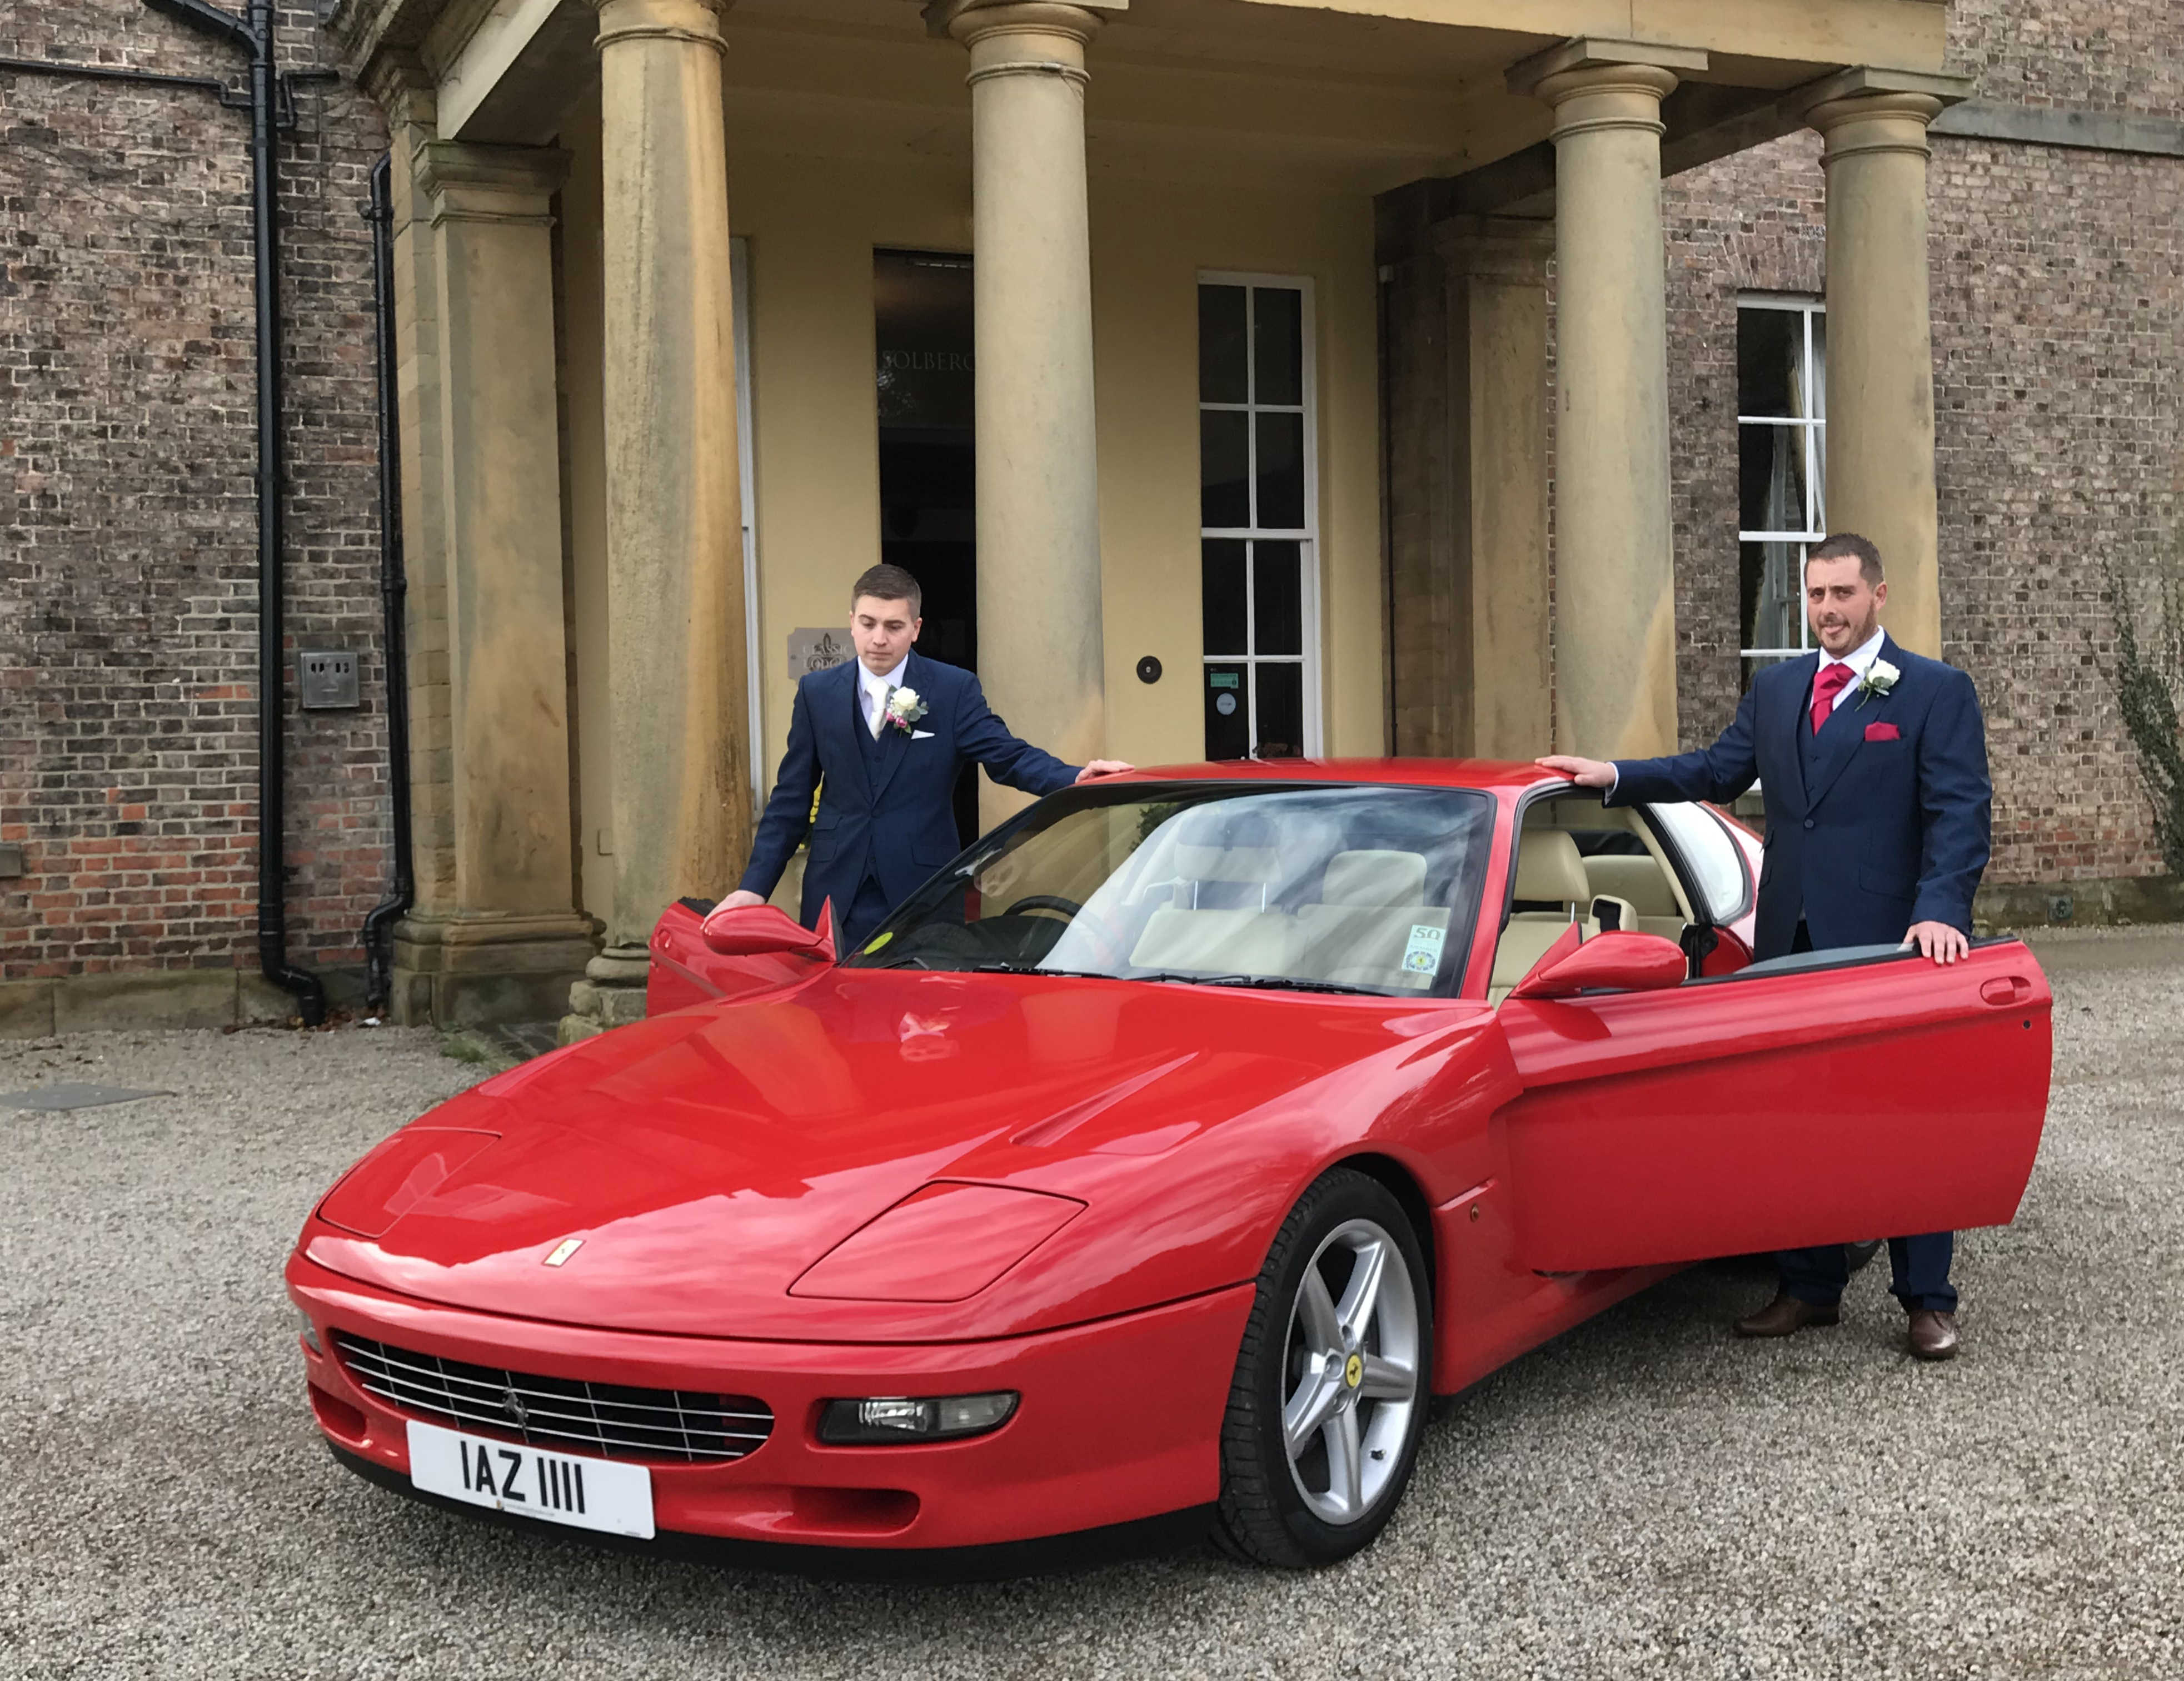 Ferrari 456GT with Groom and Bestman